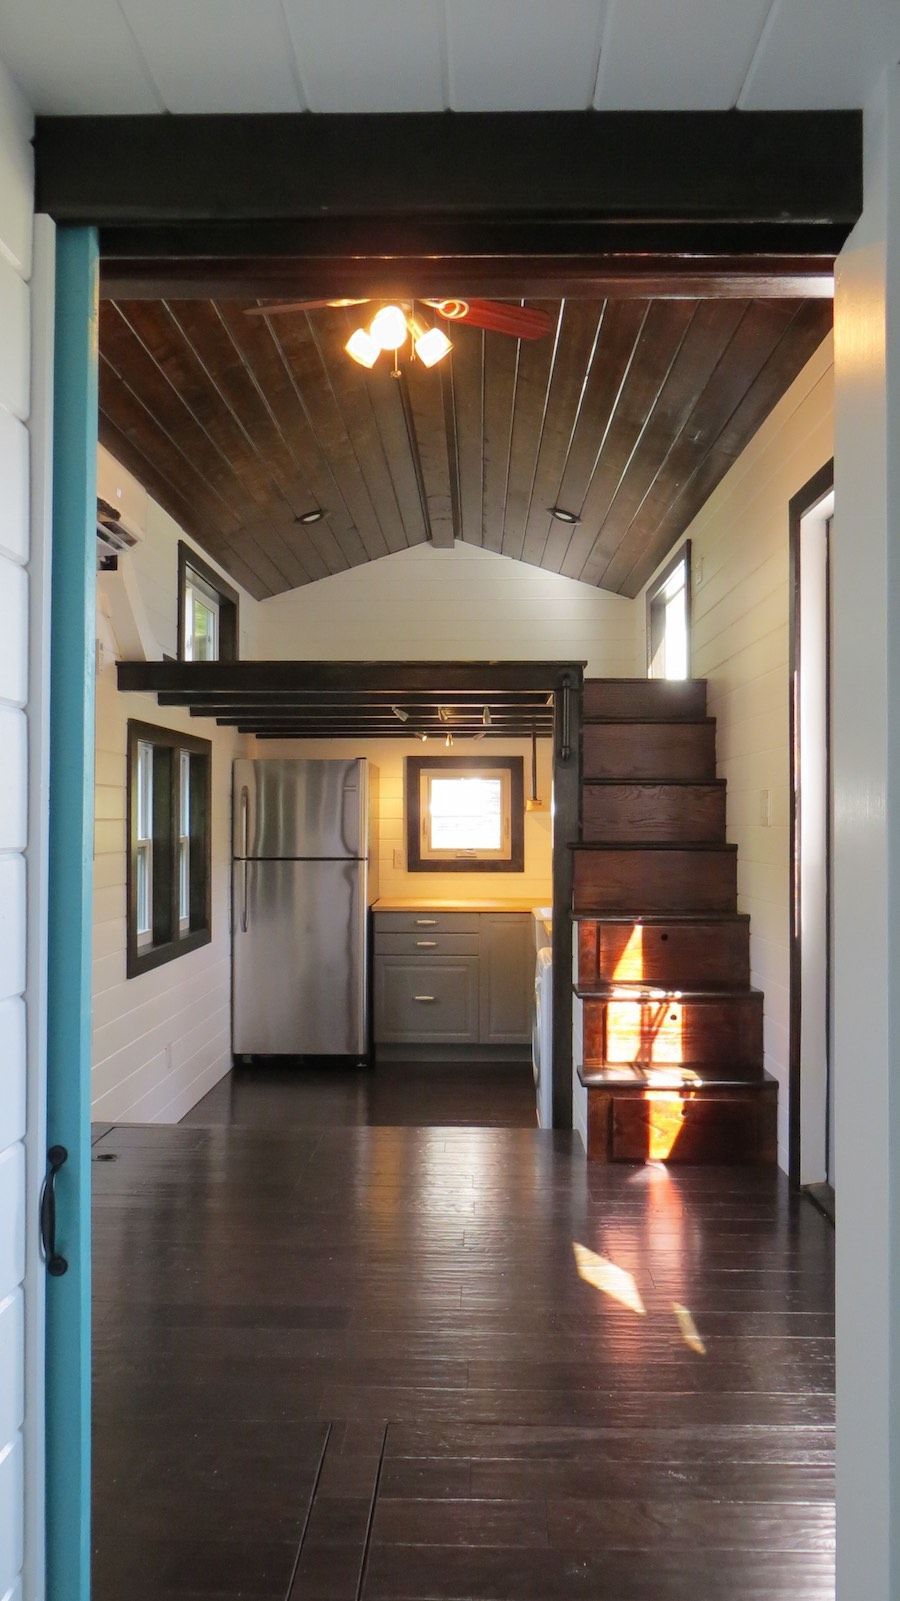 Converting sheds into livable space miniature homes and spaces - 36 North A 240 Square Feet 8 30 Tiny House On Wheels